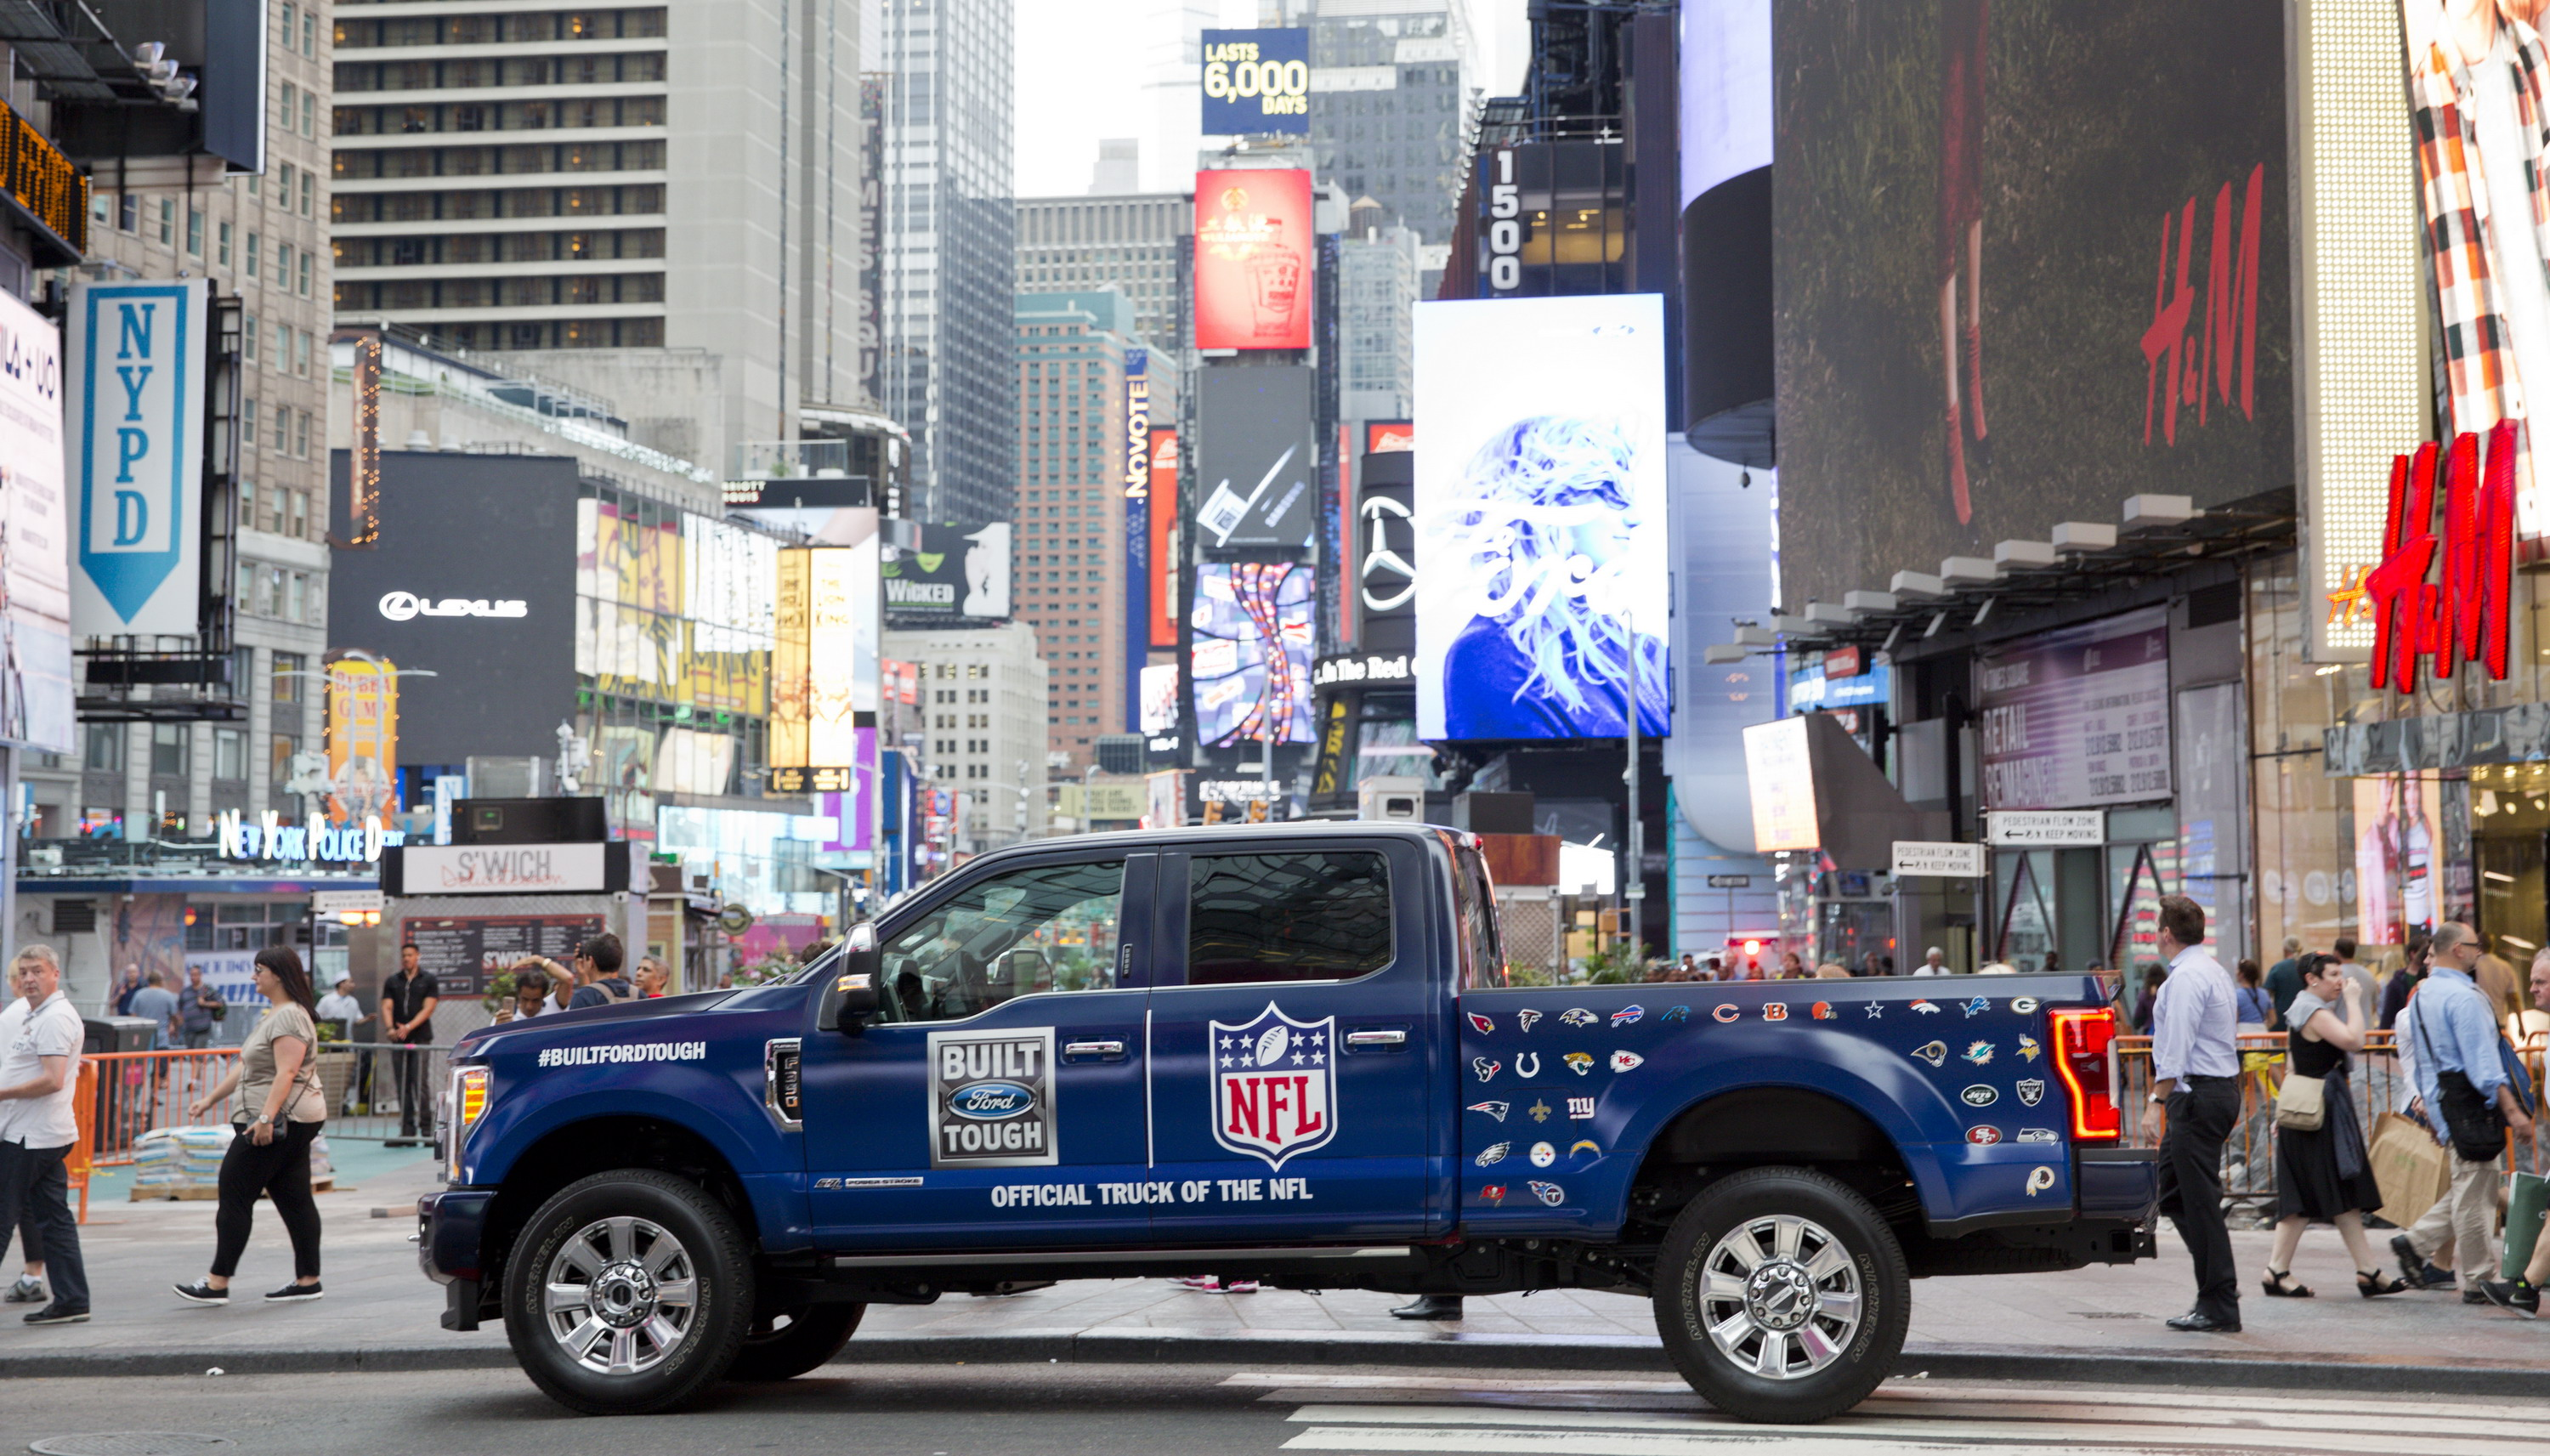 ford f series now official truck of the nfl news top speed. Black Bedroom Furniture Sets. Home Design Ideas